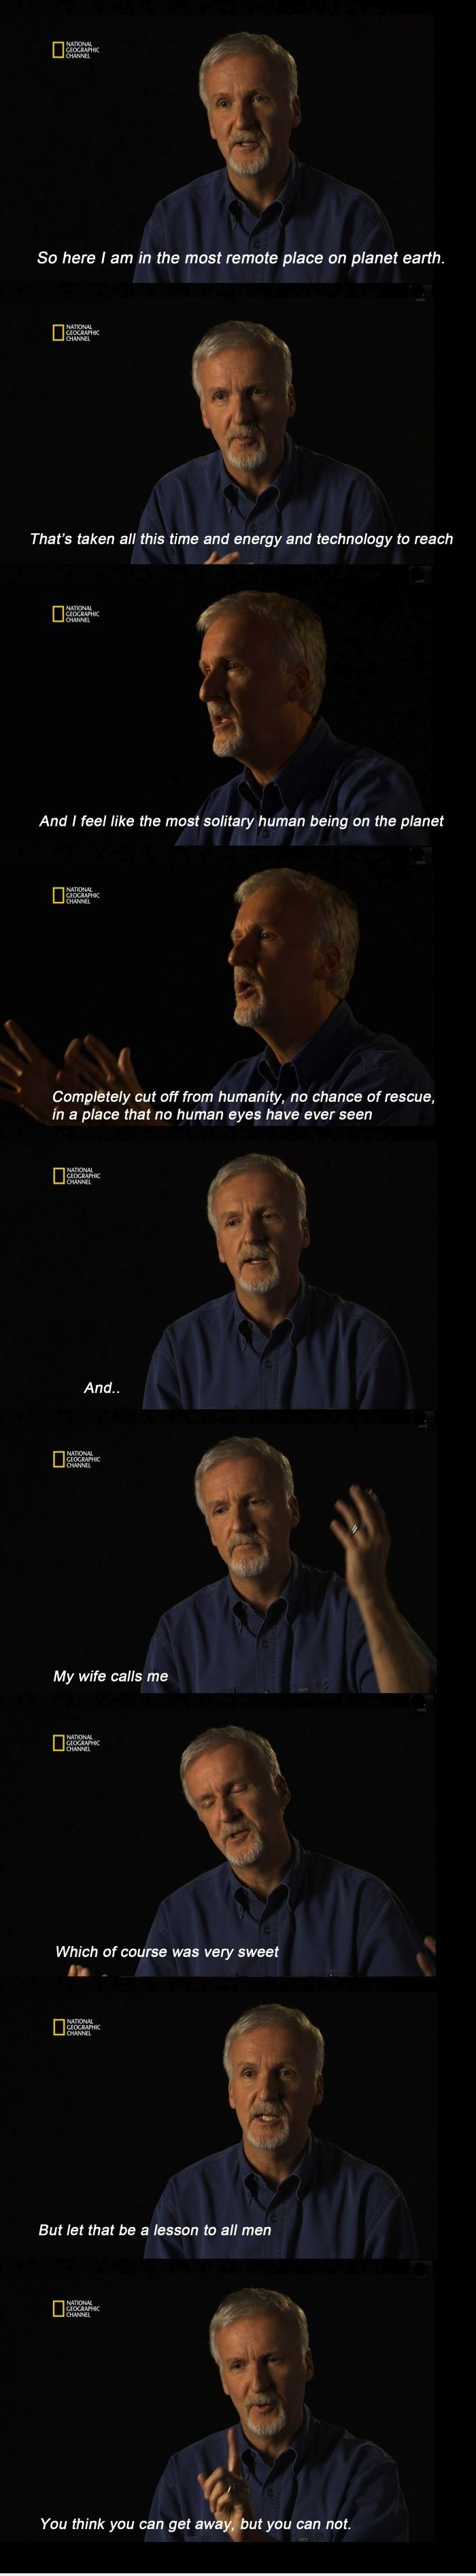 James Cameron on his deep sea dive and marriage